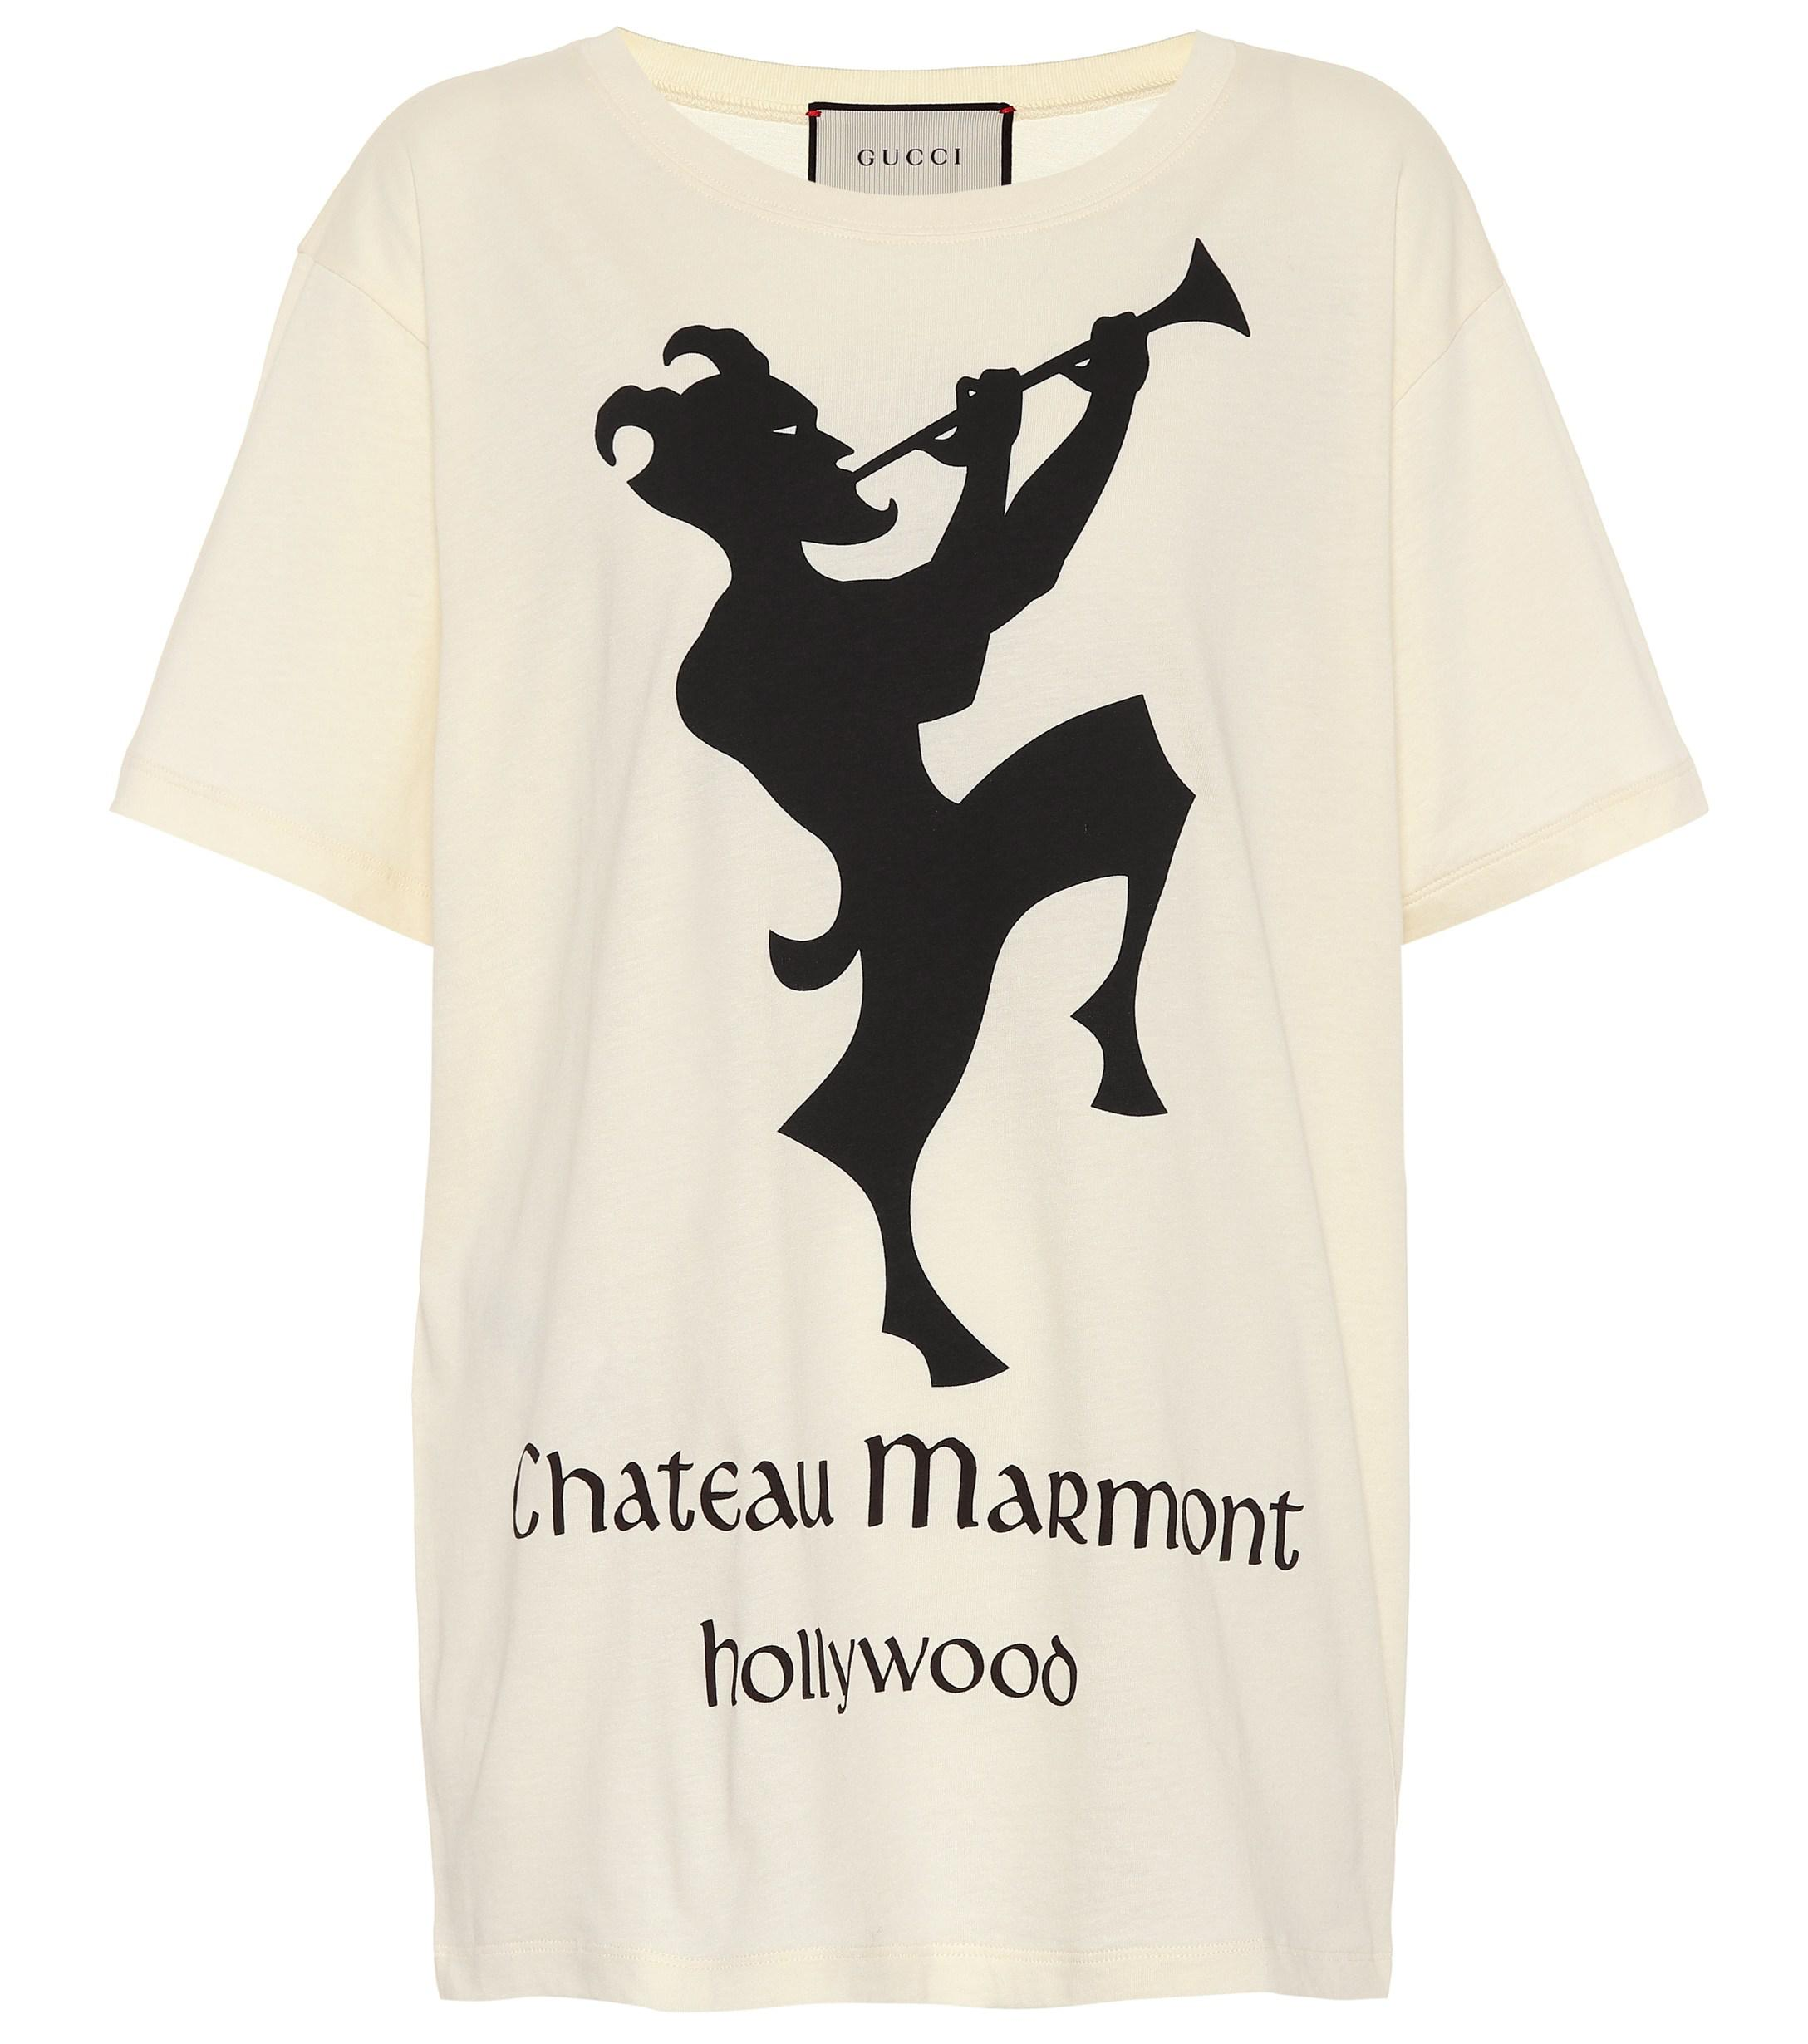 74b948fef4 Gucci Chateau Marmont Cotton T-shirt in White - Save 7% - Lyst